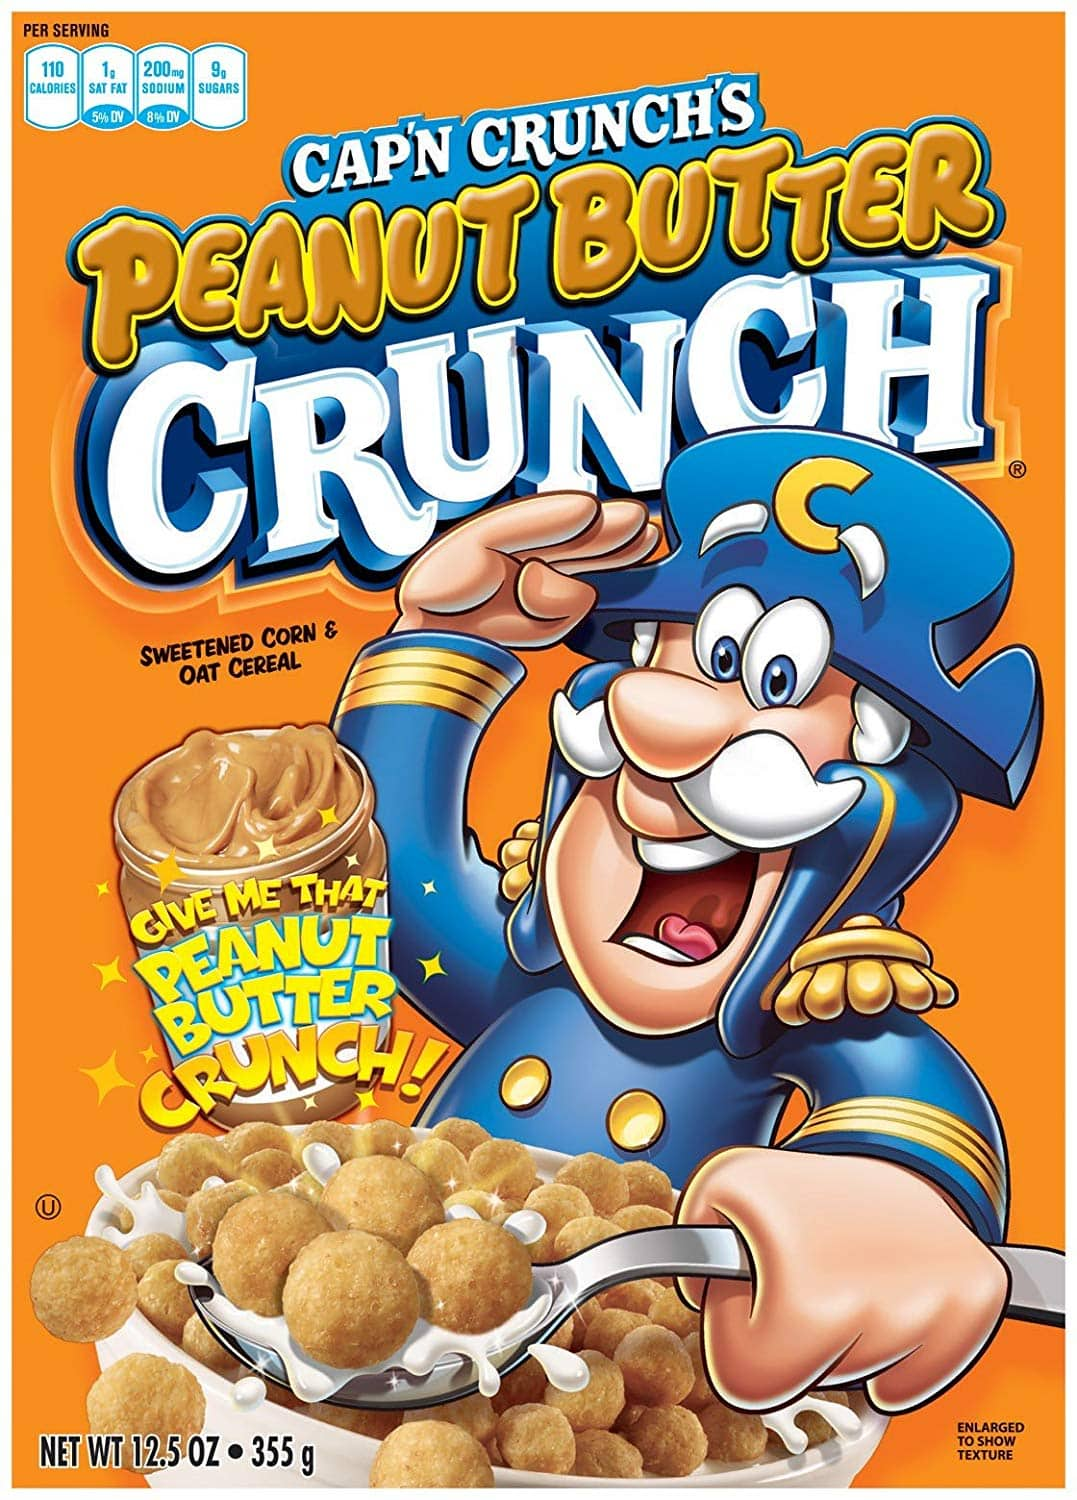 Prime Pantry Deal. Cap'n Crunch Peanut Butter Crunch Breakfast Cereal, 5 x 12.5 Ounce Box + Glade Solid Air Freshener, Clean Linen, 6 oz  $5.52 YMMV